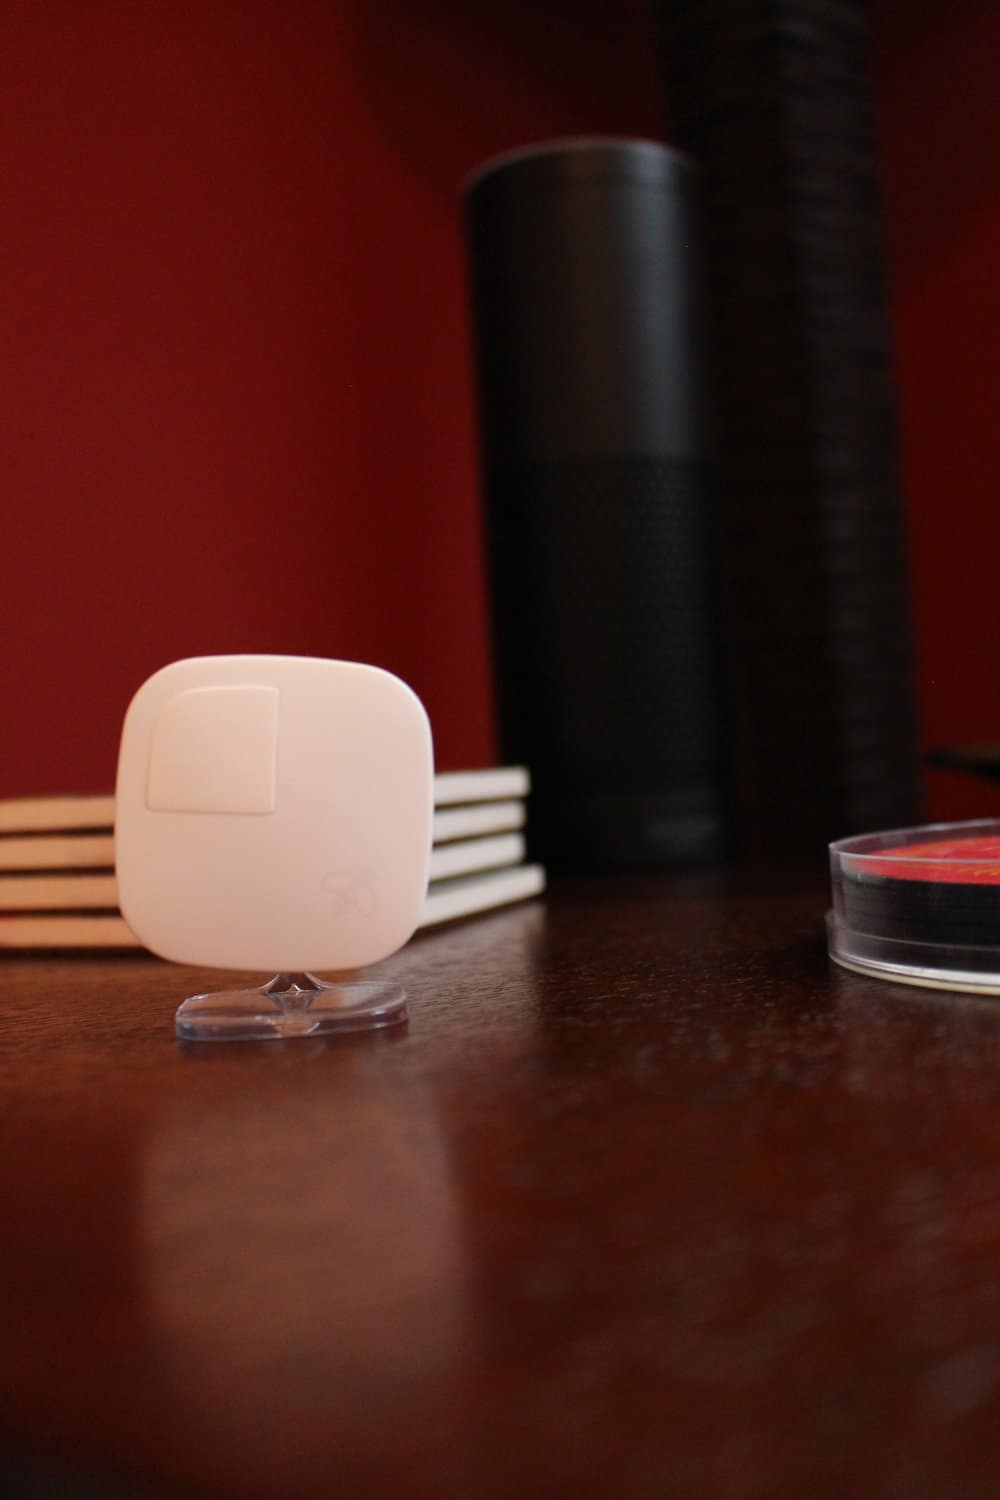 Occupancy is when your home knows whos home. - Smart sensors make for a smart home.